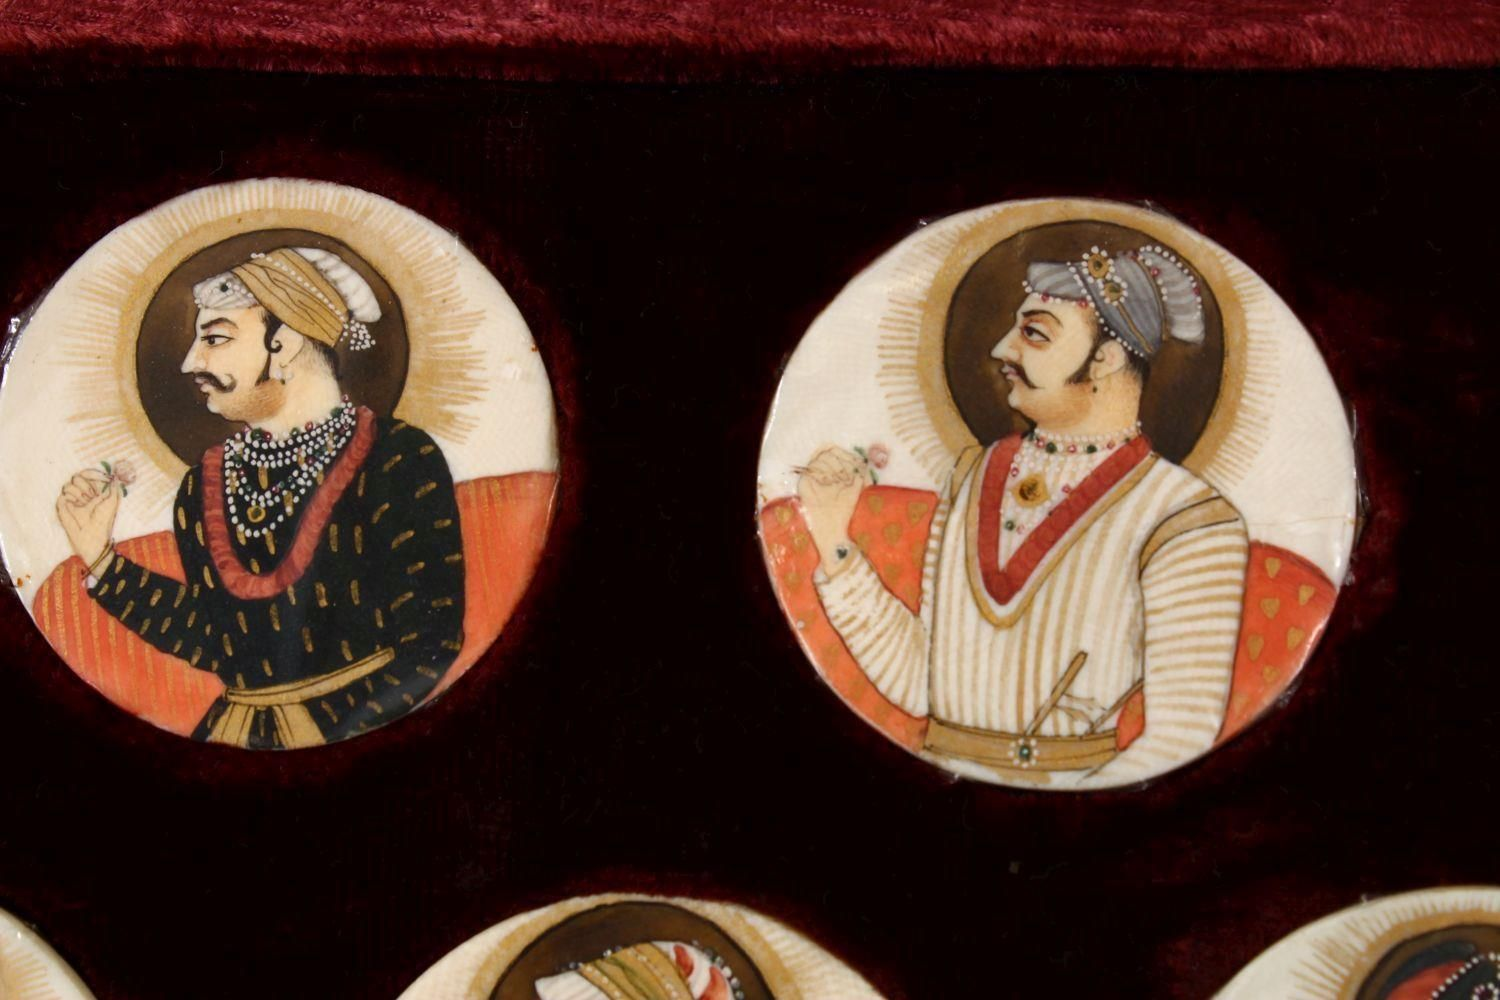 A BOXED SET OF THIRTEEN 18TH/19TH CENTURY PERSIAN CARVED & PAINTED IVORY MINIATURES, each of the - Image 6 of 10